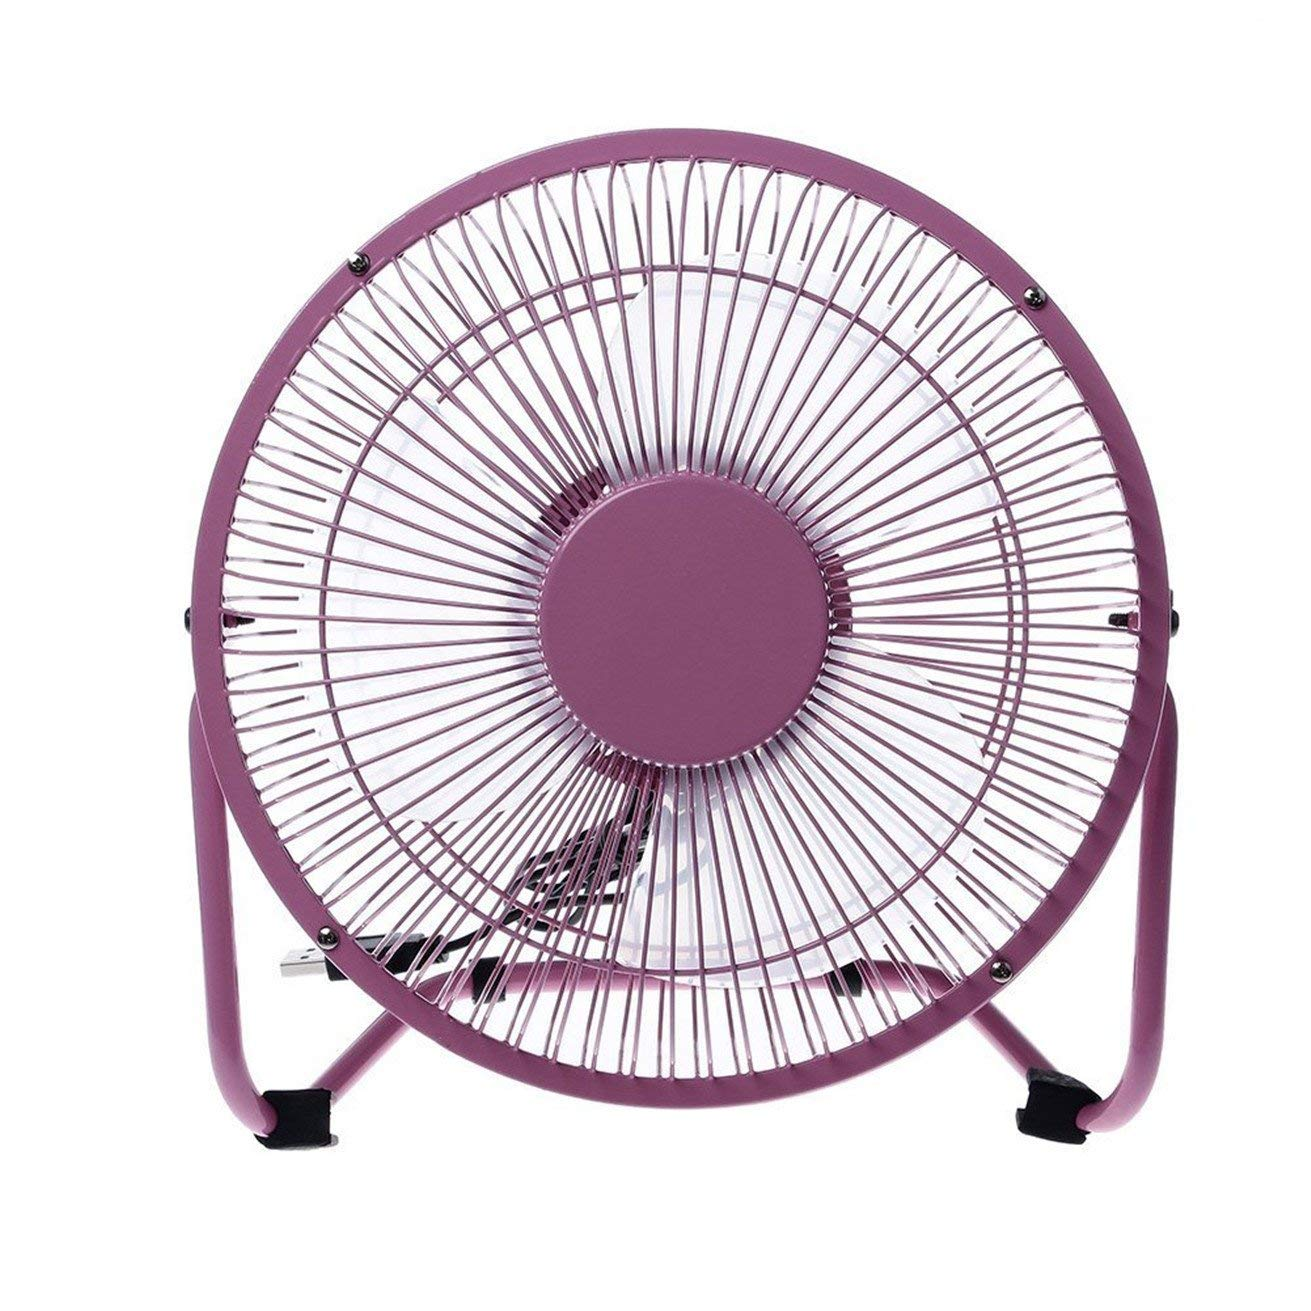 USB Fan, Portable Desk Table USB Fan for Home Bedroom Office Outdoor Travel, Quiet Operation, 2 Adjustable Speeds,360 Degrees Rotation, 3.6FT Retractable USB Cable